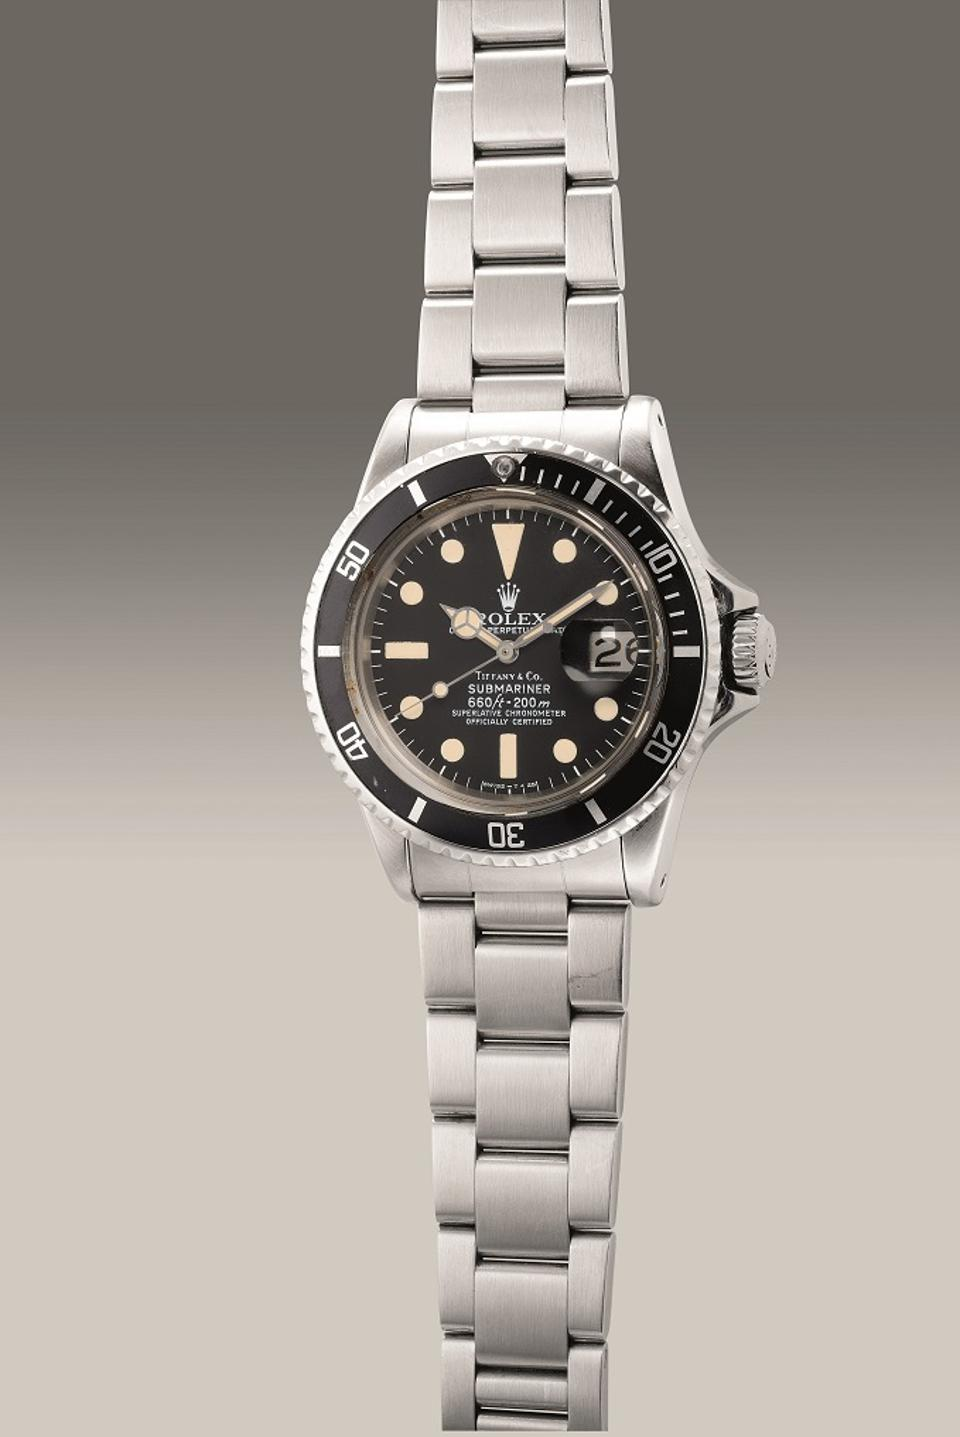 Rolex Reference 1680, 1977, stainless steel diver's wristwatch retailed by Tiffany & Co.